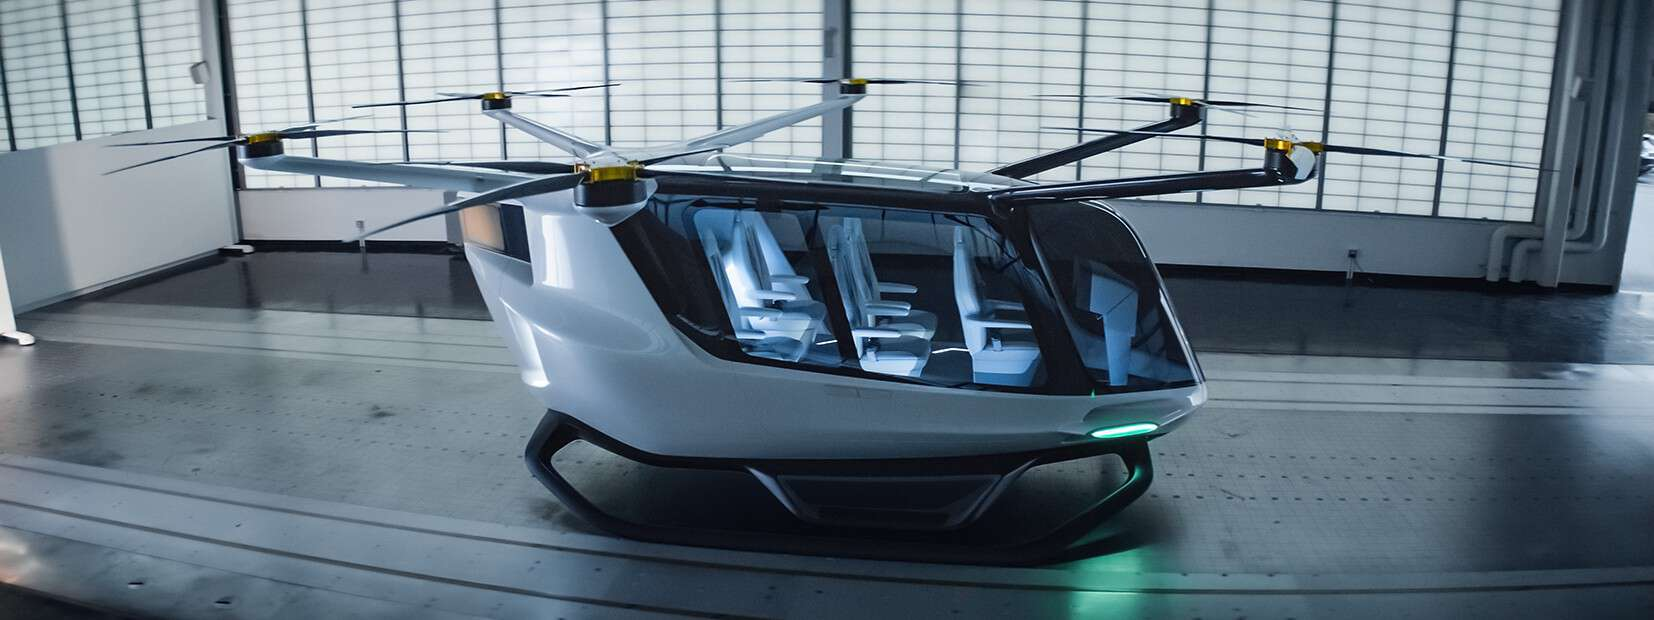 bmw skai flying car 4